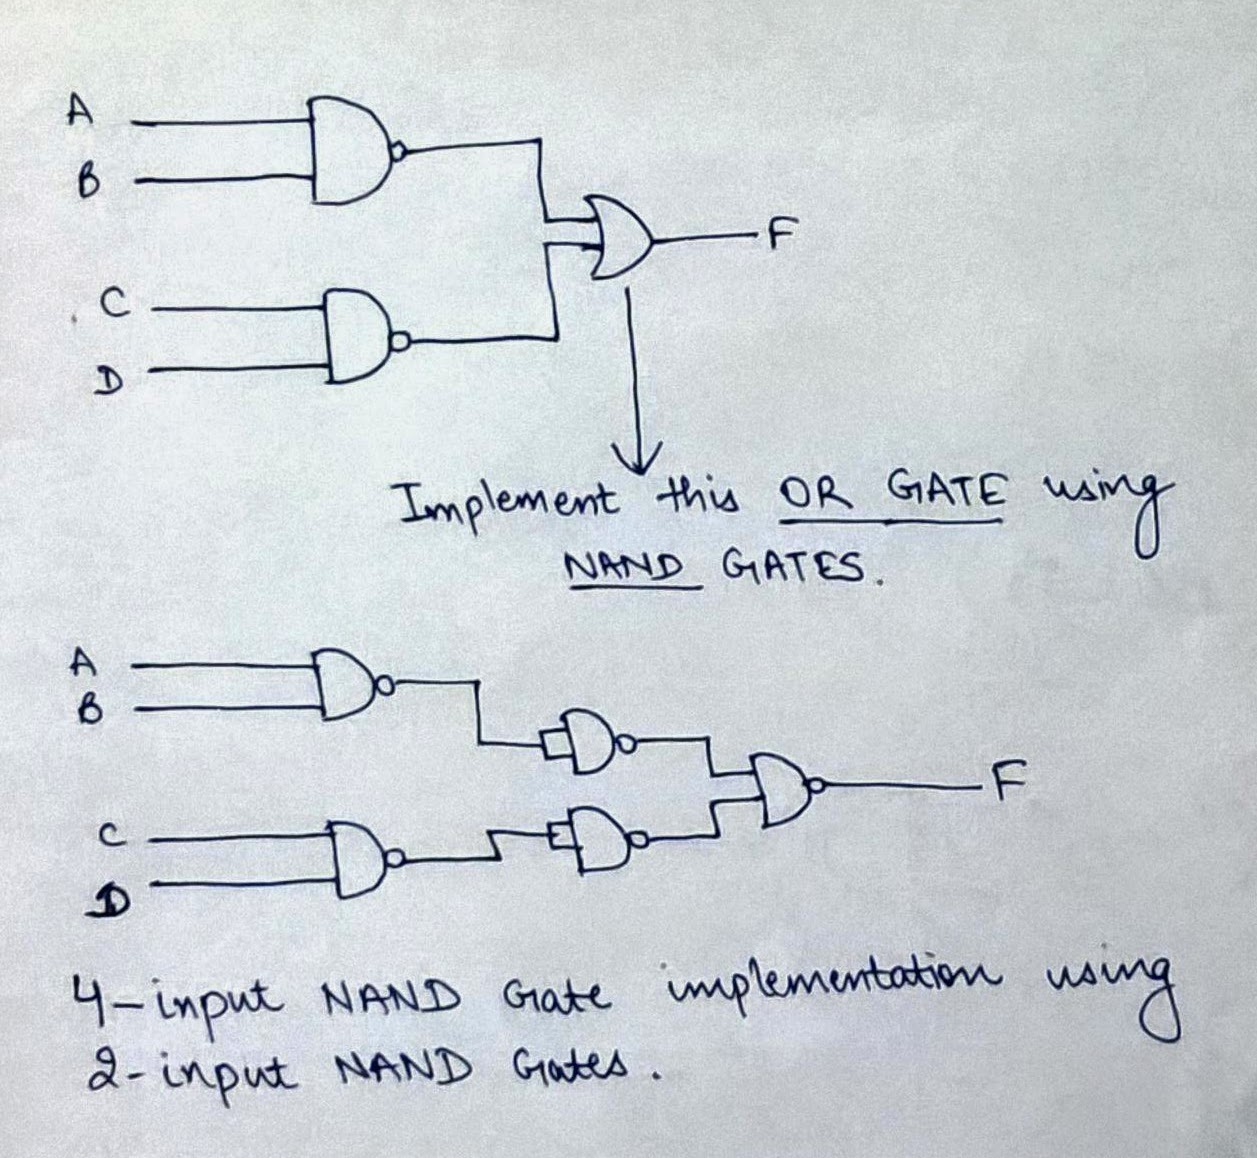 4-input NAND GATE implementation using 2-input NAND GATES